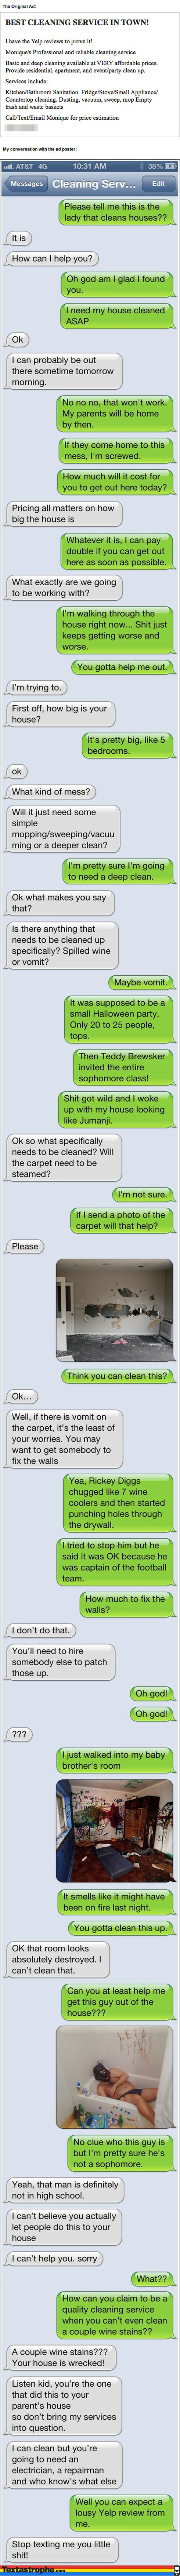 Distractify | The 11 Most Epic Texting Pranks Of All Time